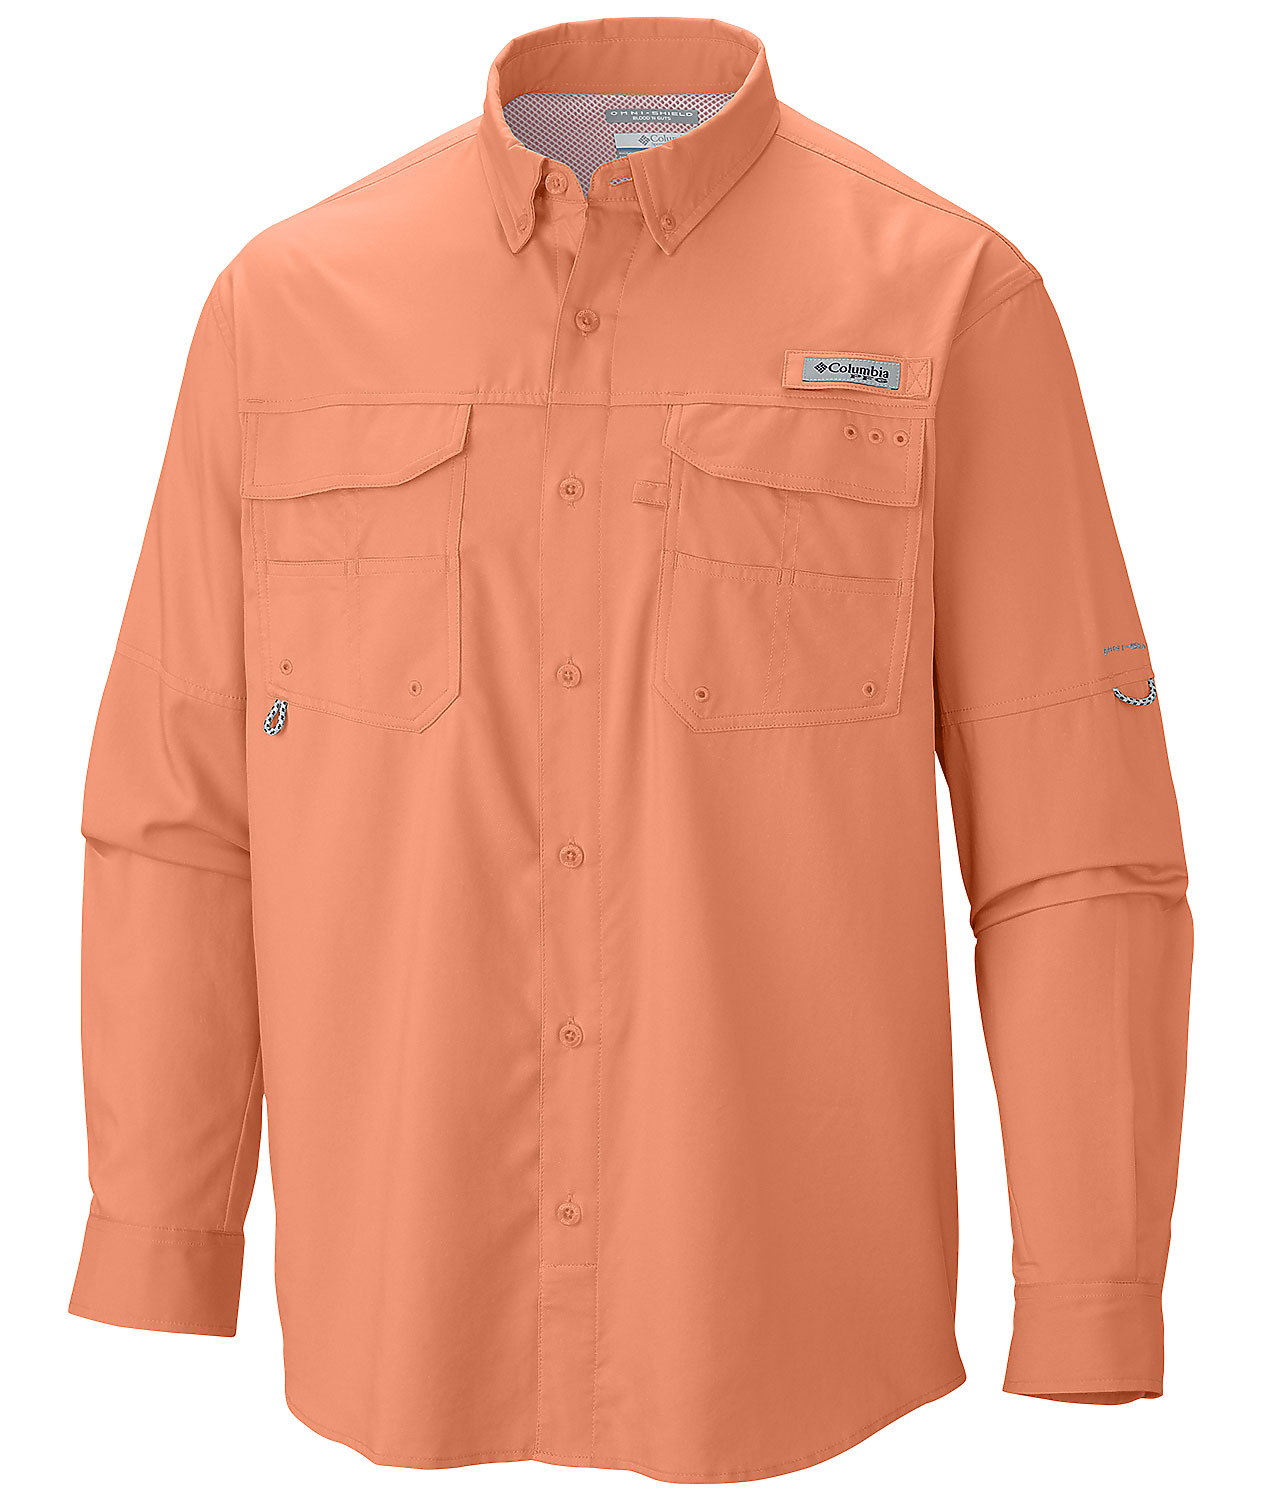 Columbia Mens Blood and Guts Long Sleeve Shirt